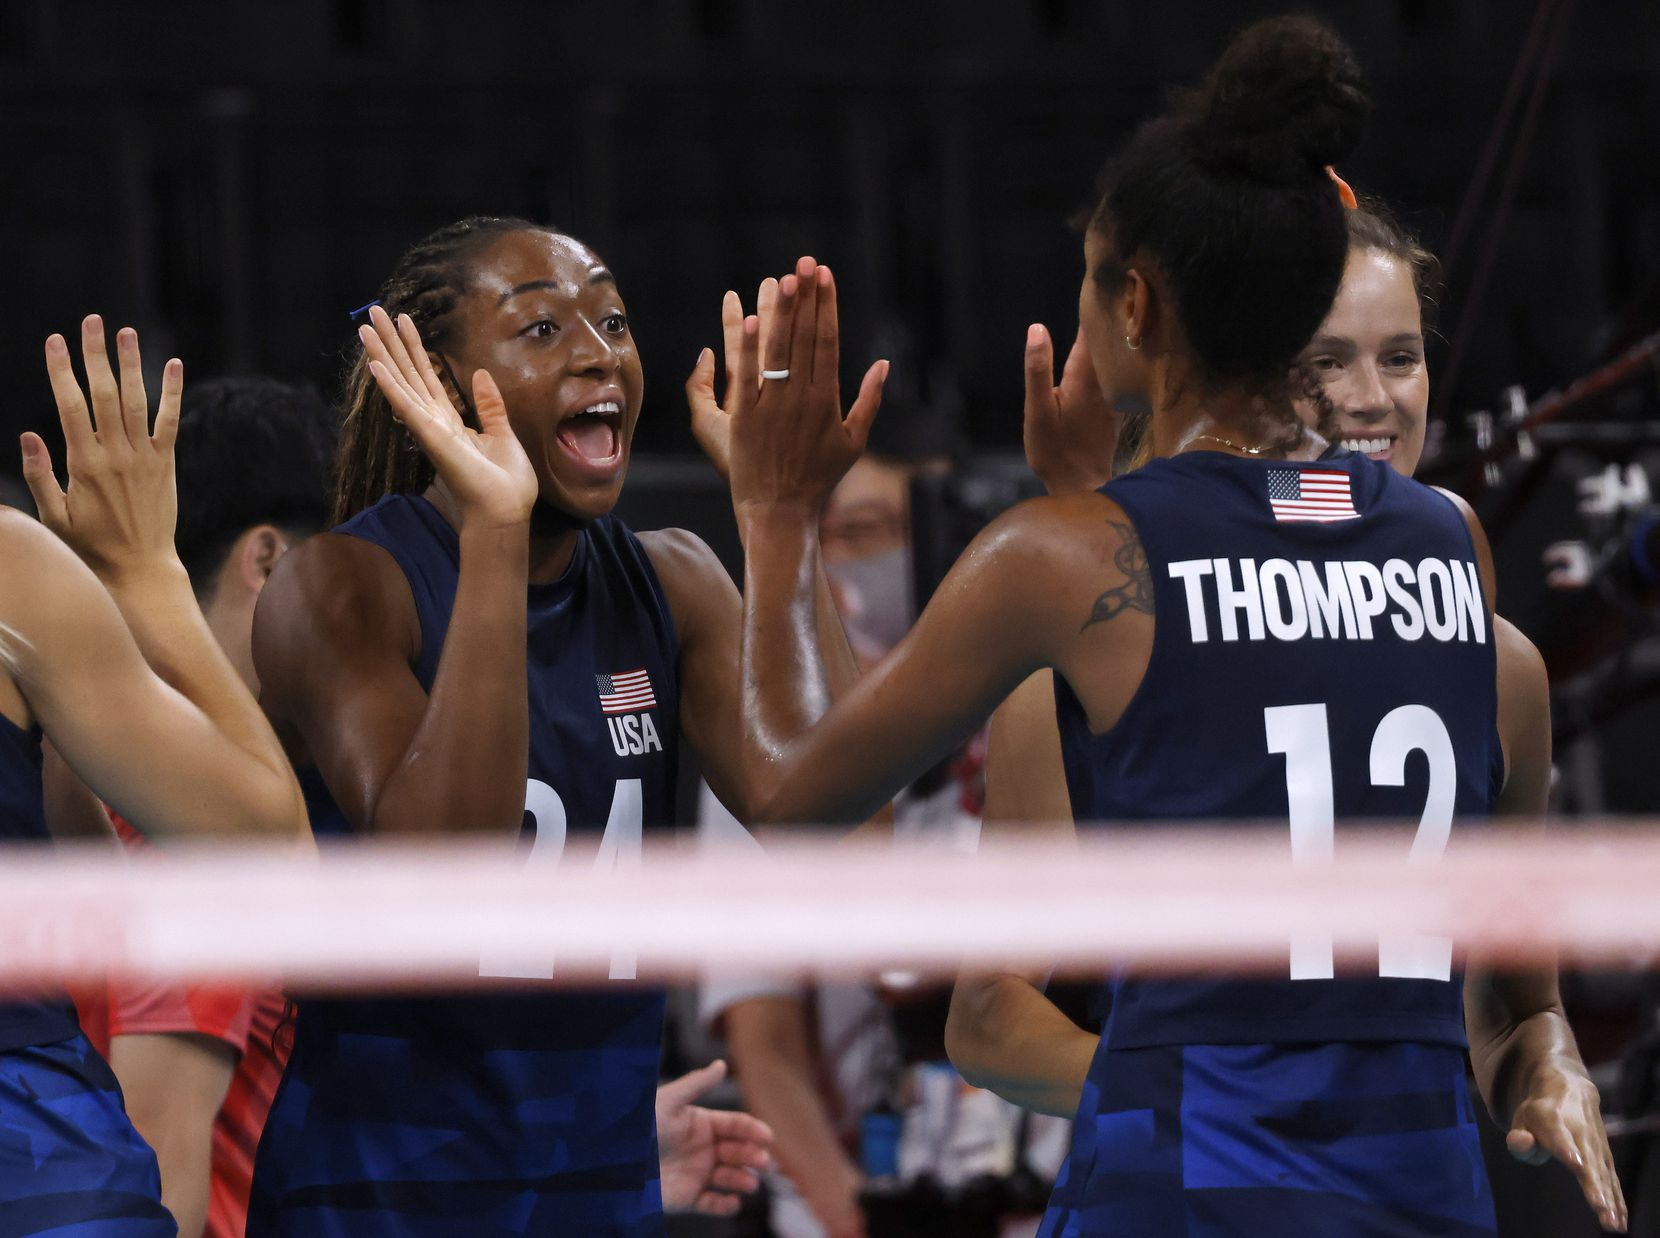 USA's Chiaka Ogbogu (24) celebrates with Jordan Thompson (12) after the team defeated Argentina in a women's volleyball game during the postponed 2020 Tokyo Olympics at Ariake Arena on Sunday, July 25, 2021, in Tokyo, Japan. USA defeated Argentina 3-0 (25-20, 25-19, 25-20). (Vernon Bryant/The Dallas Morning News)